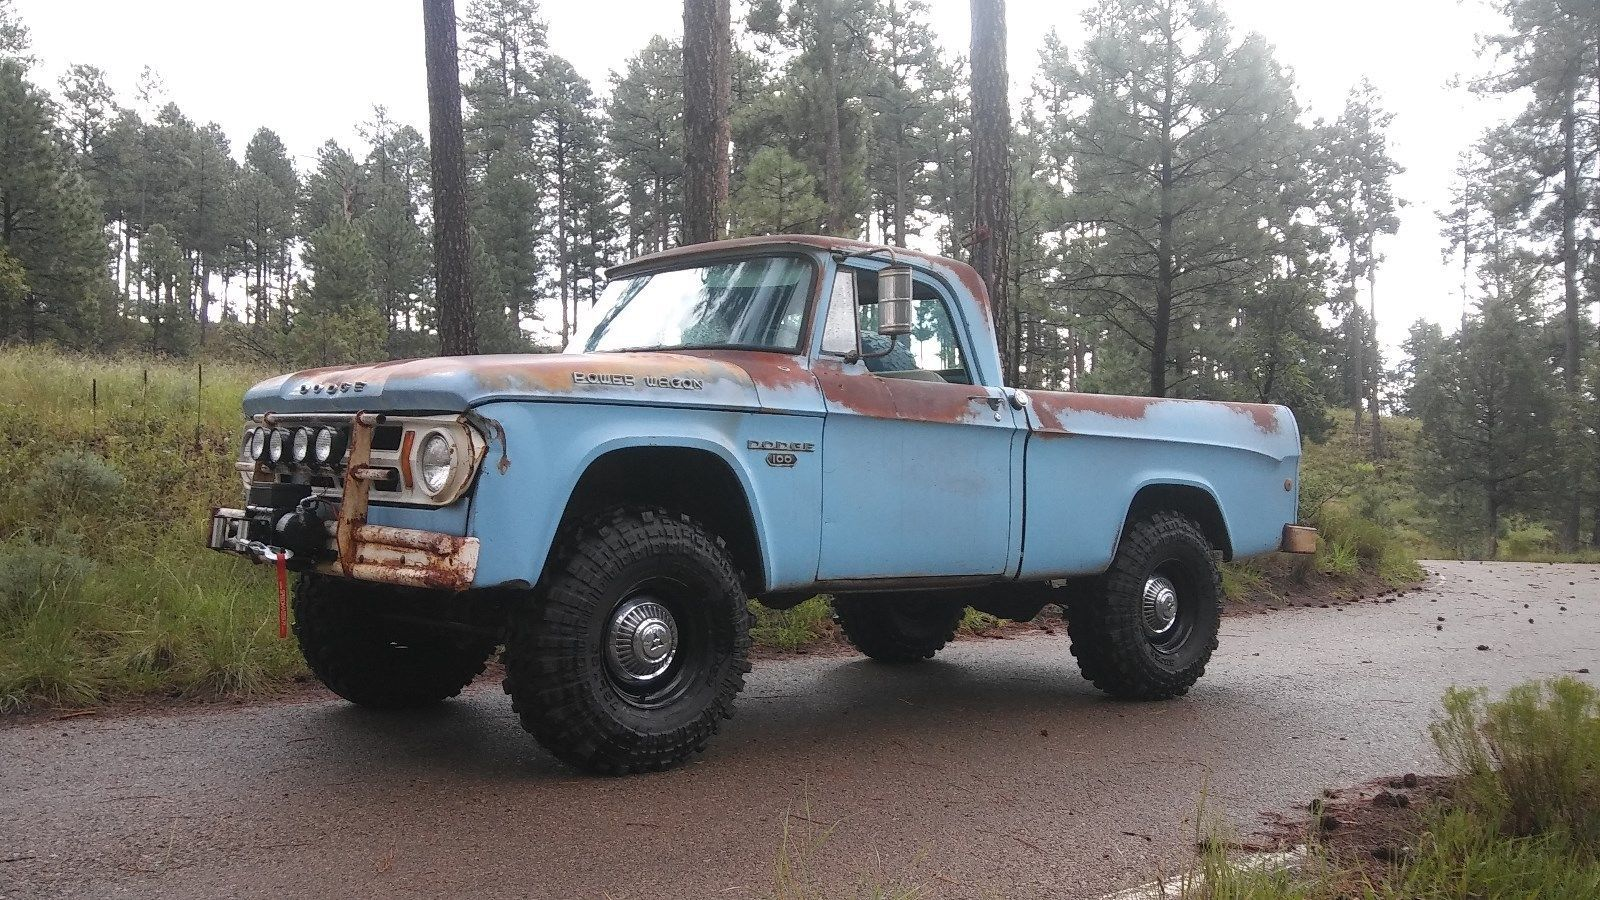 1968 Dodge Power Wagon W100 Short Bed Pick Up 4x4 With 56913 Crew Cab For Sale Original Miles Paint Great Patina It Has The 318 V8 Engine A 4